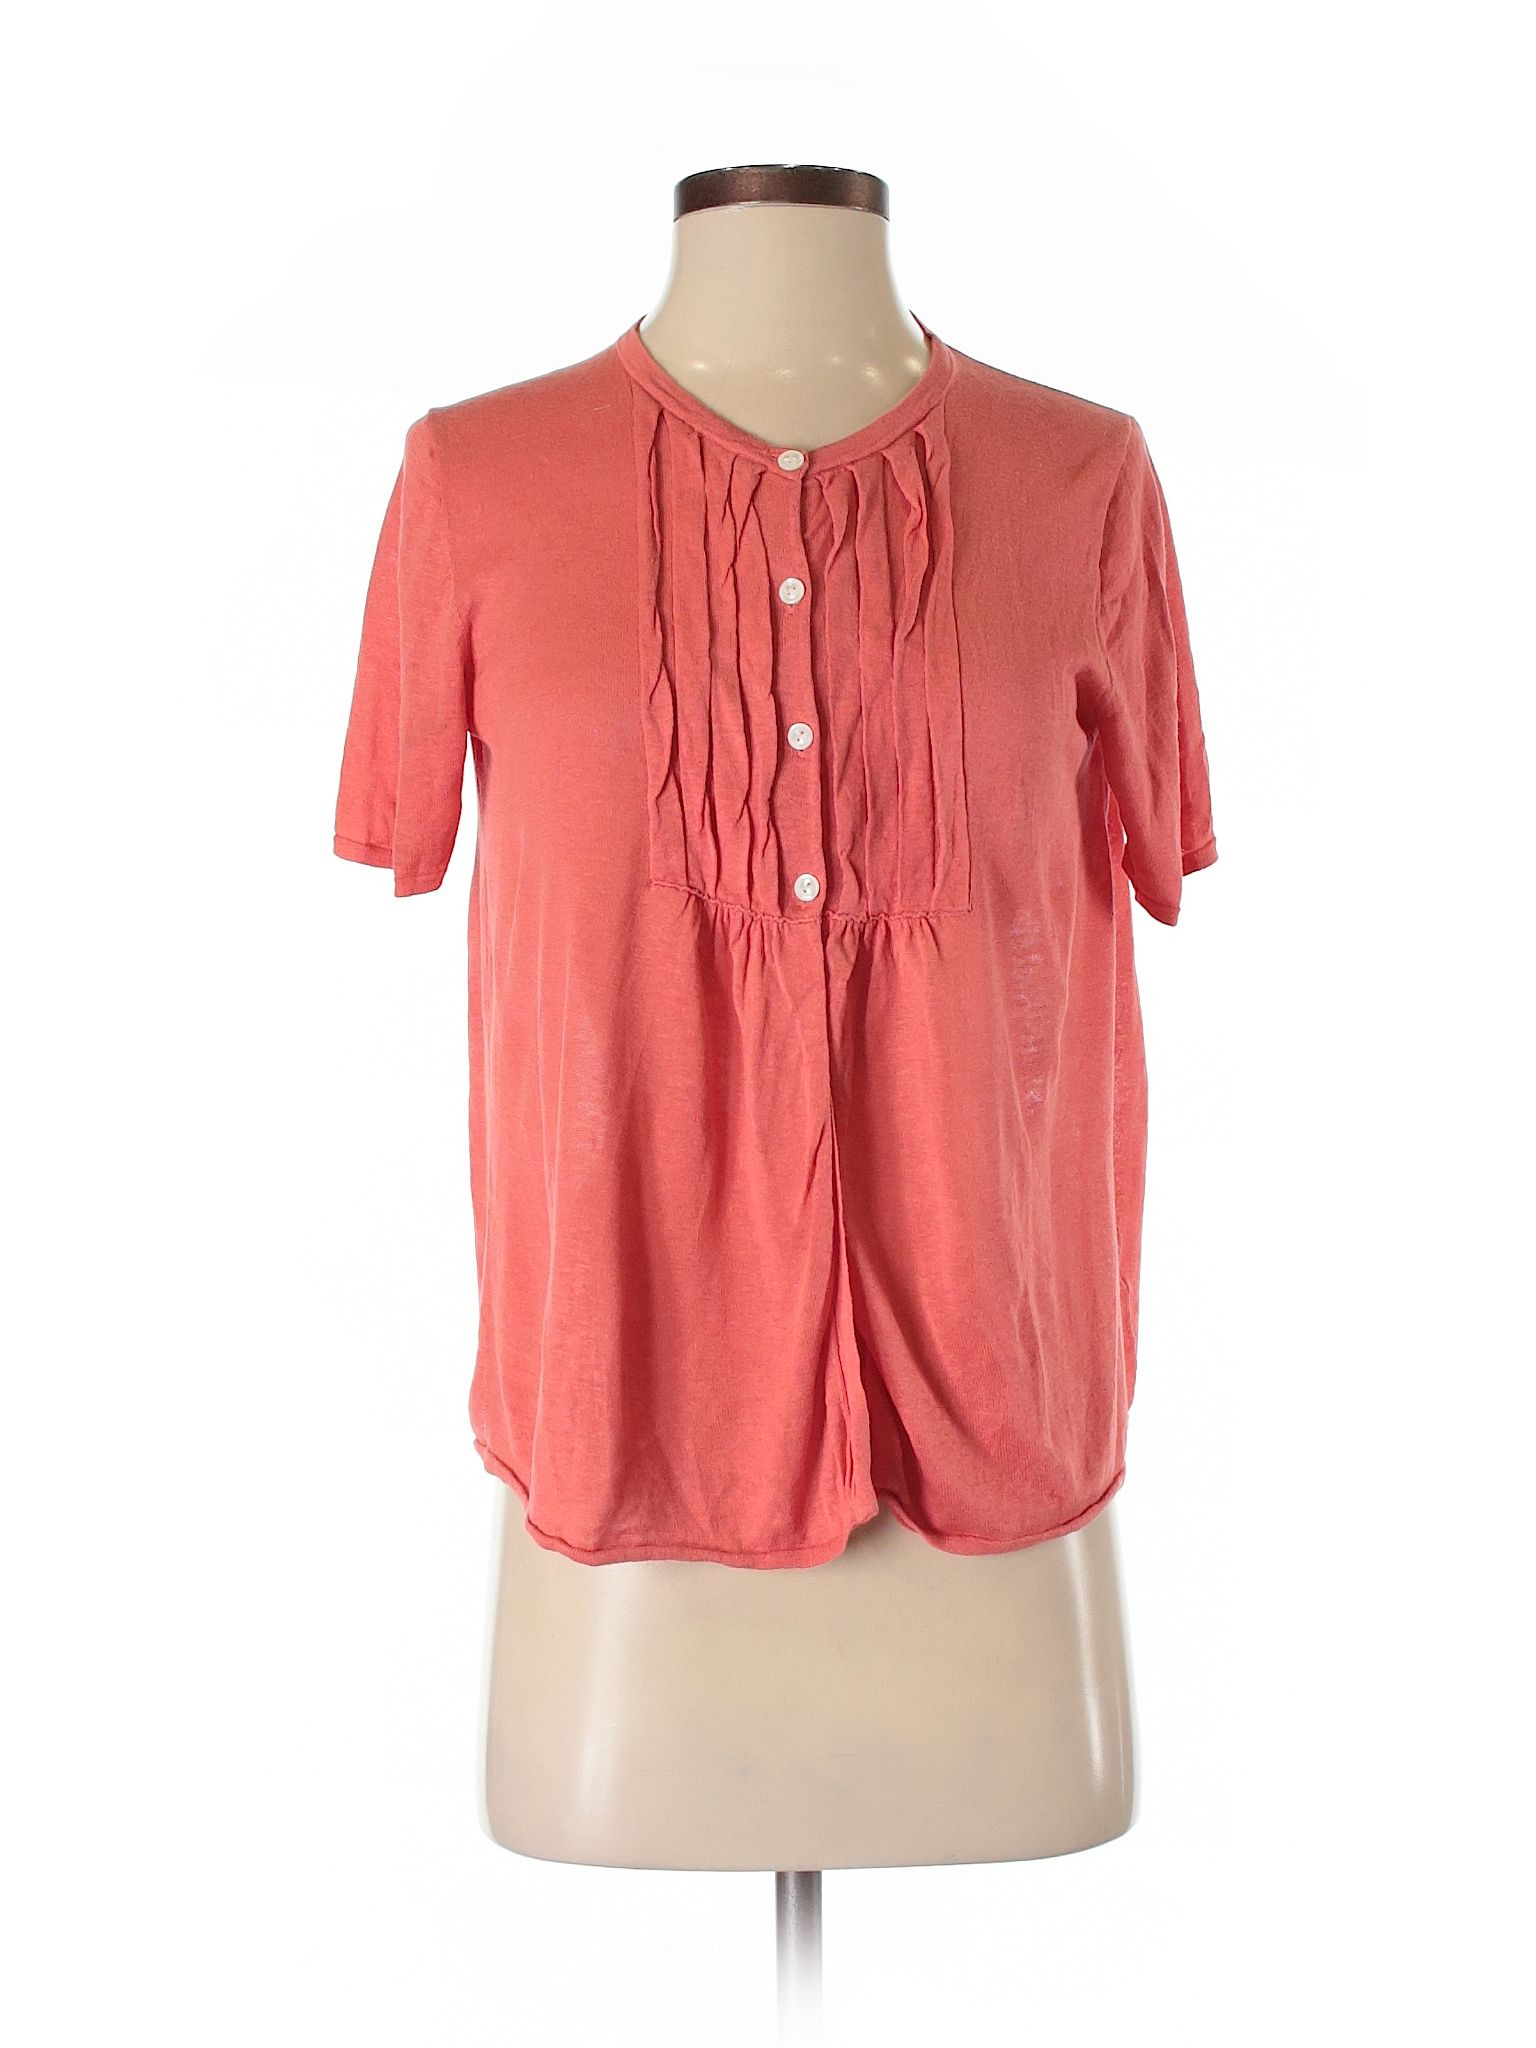 J Crew Short Sleeve Silk Top Size 400 Coral Womens